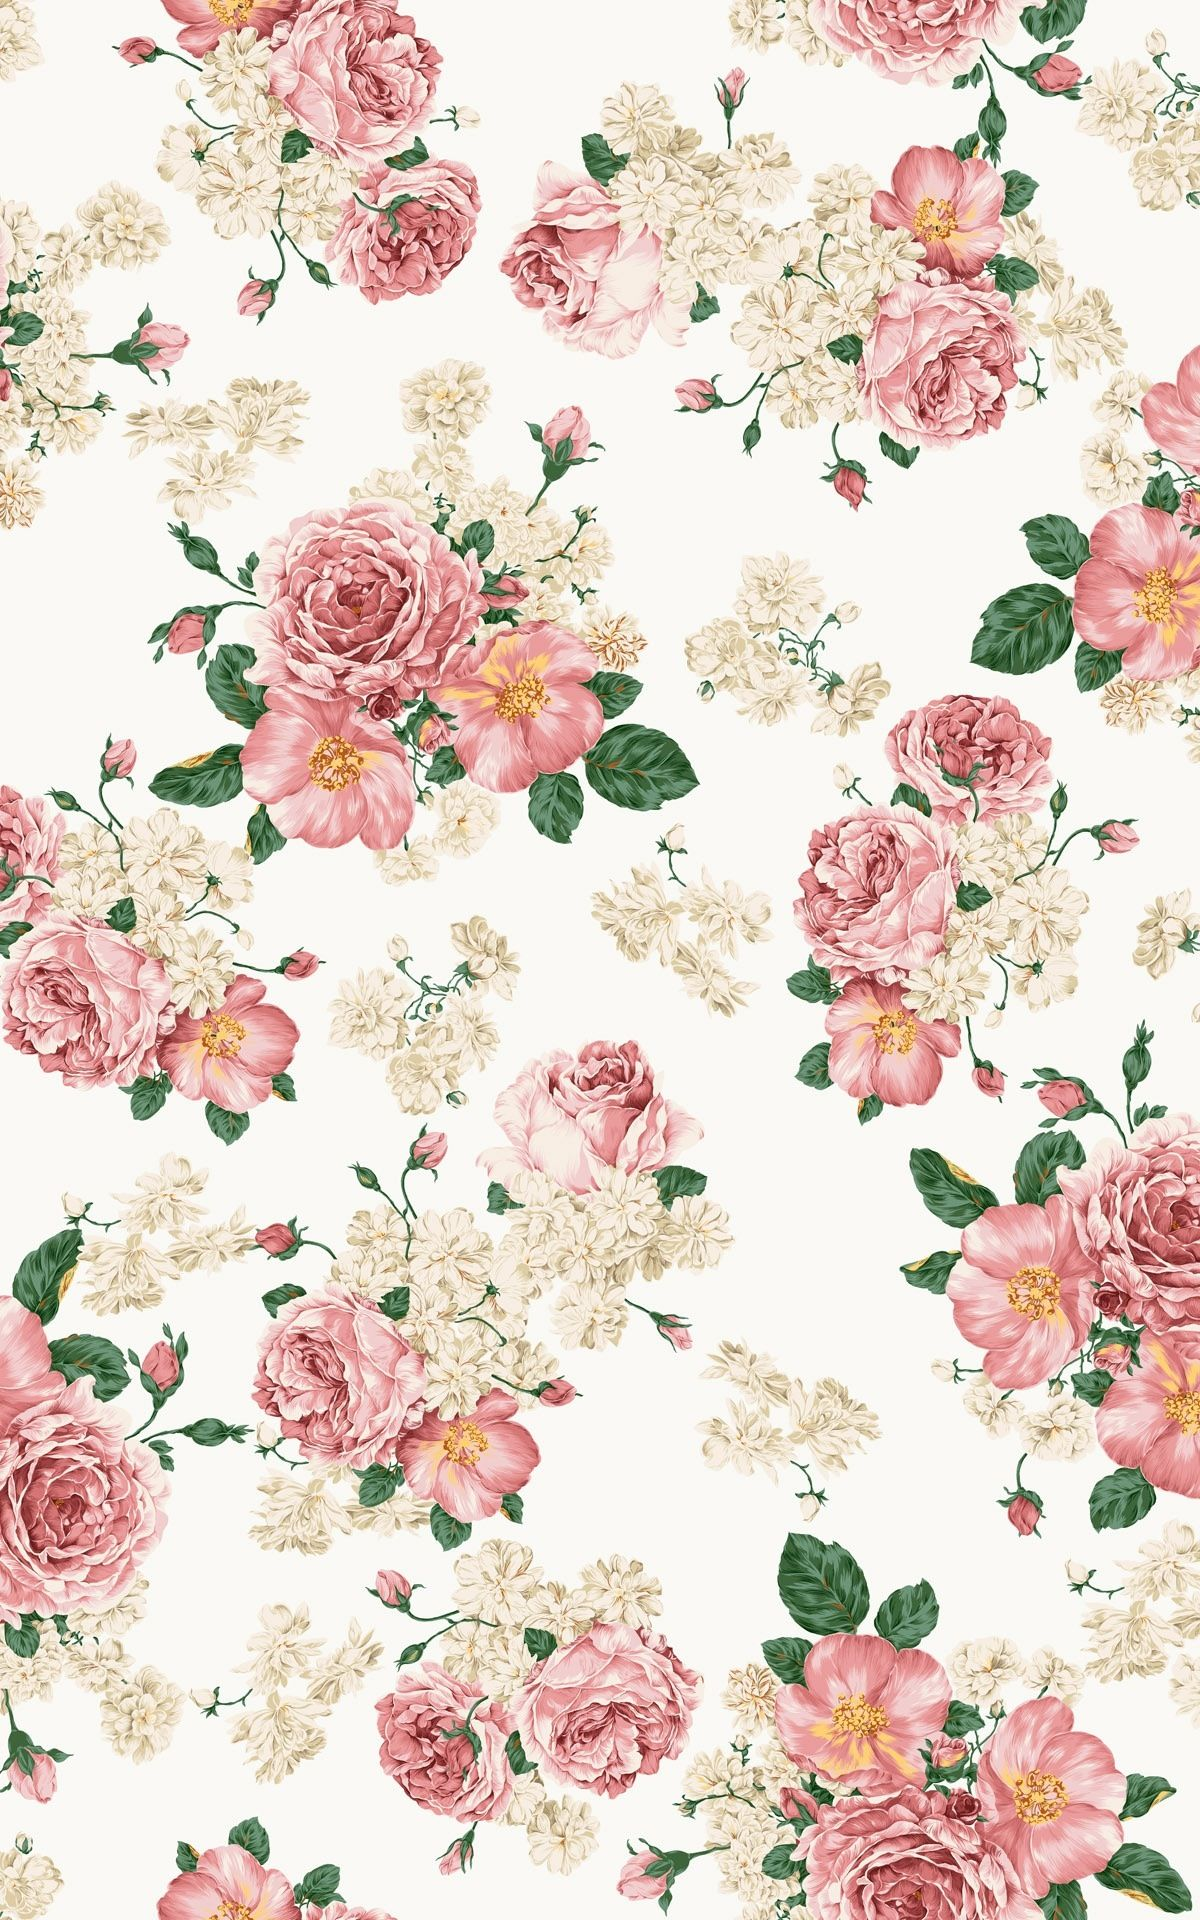 Pin By Peggy Dollar On Wallpapers Floral Wallpaper Flower Patterns Floral Prints